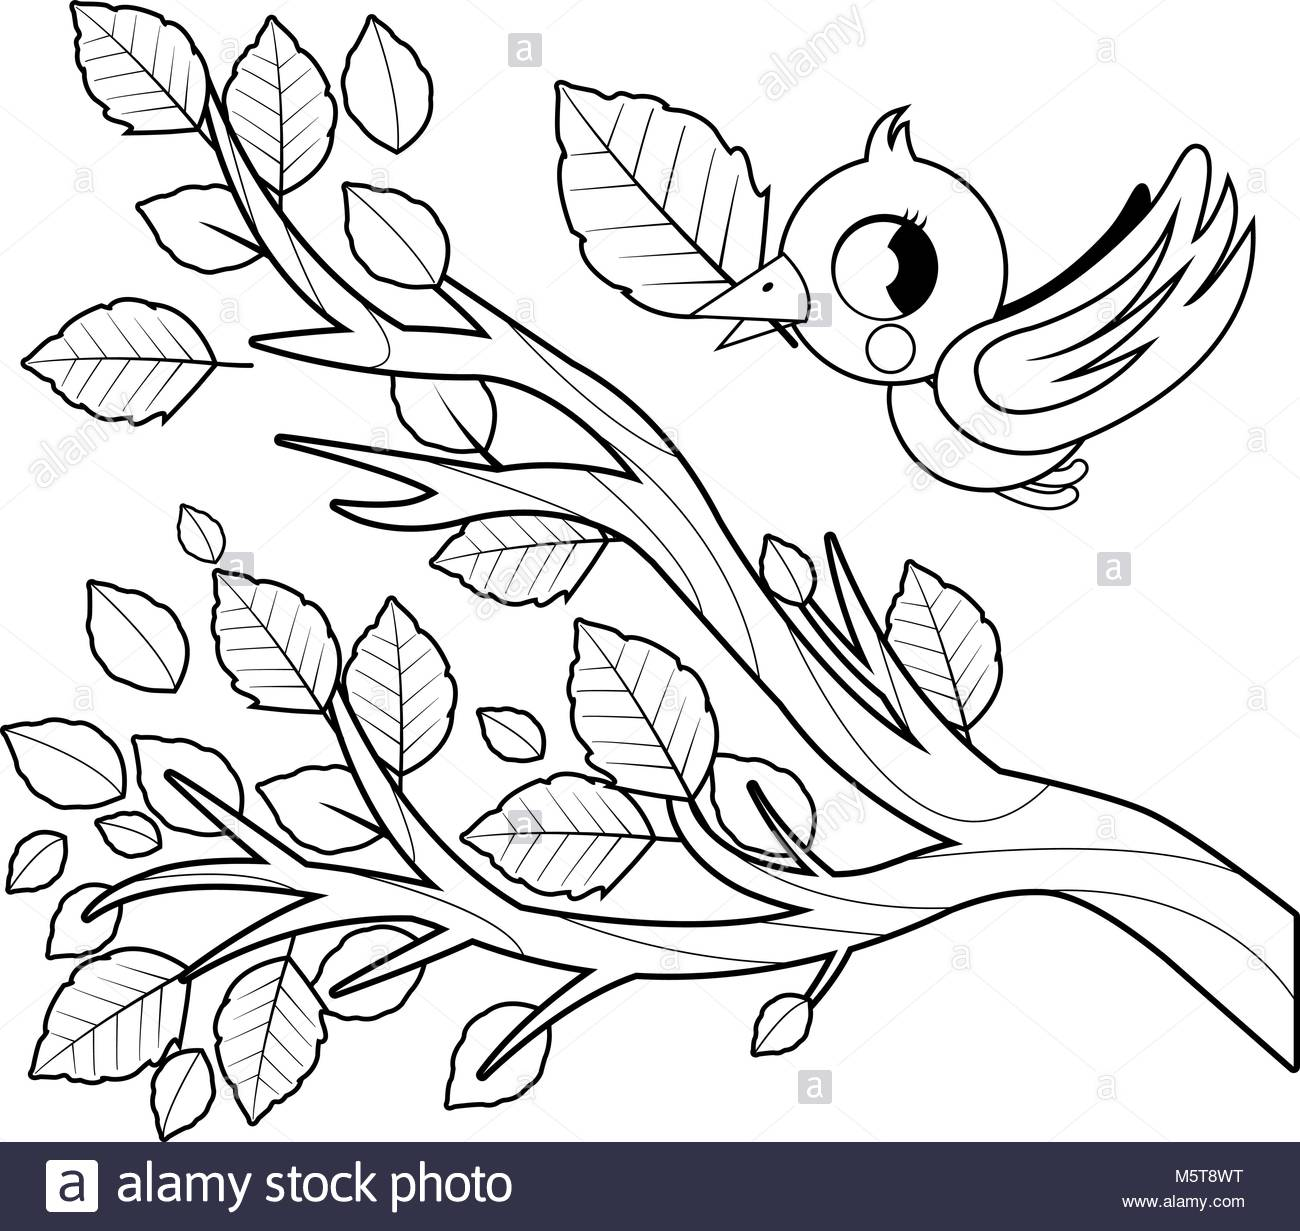 1300x1231 Tree Branch Drawing Black And White Stock Photos Amp Images